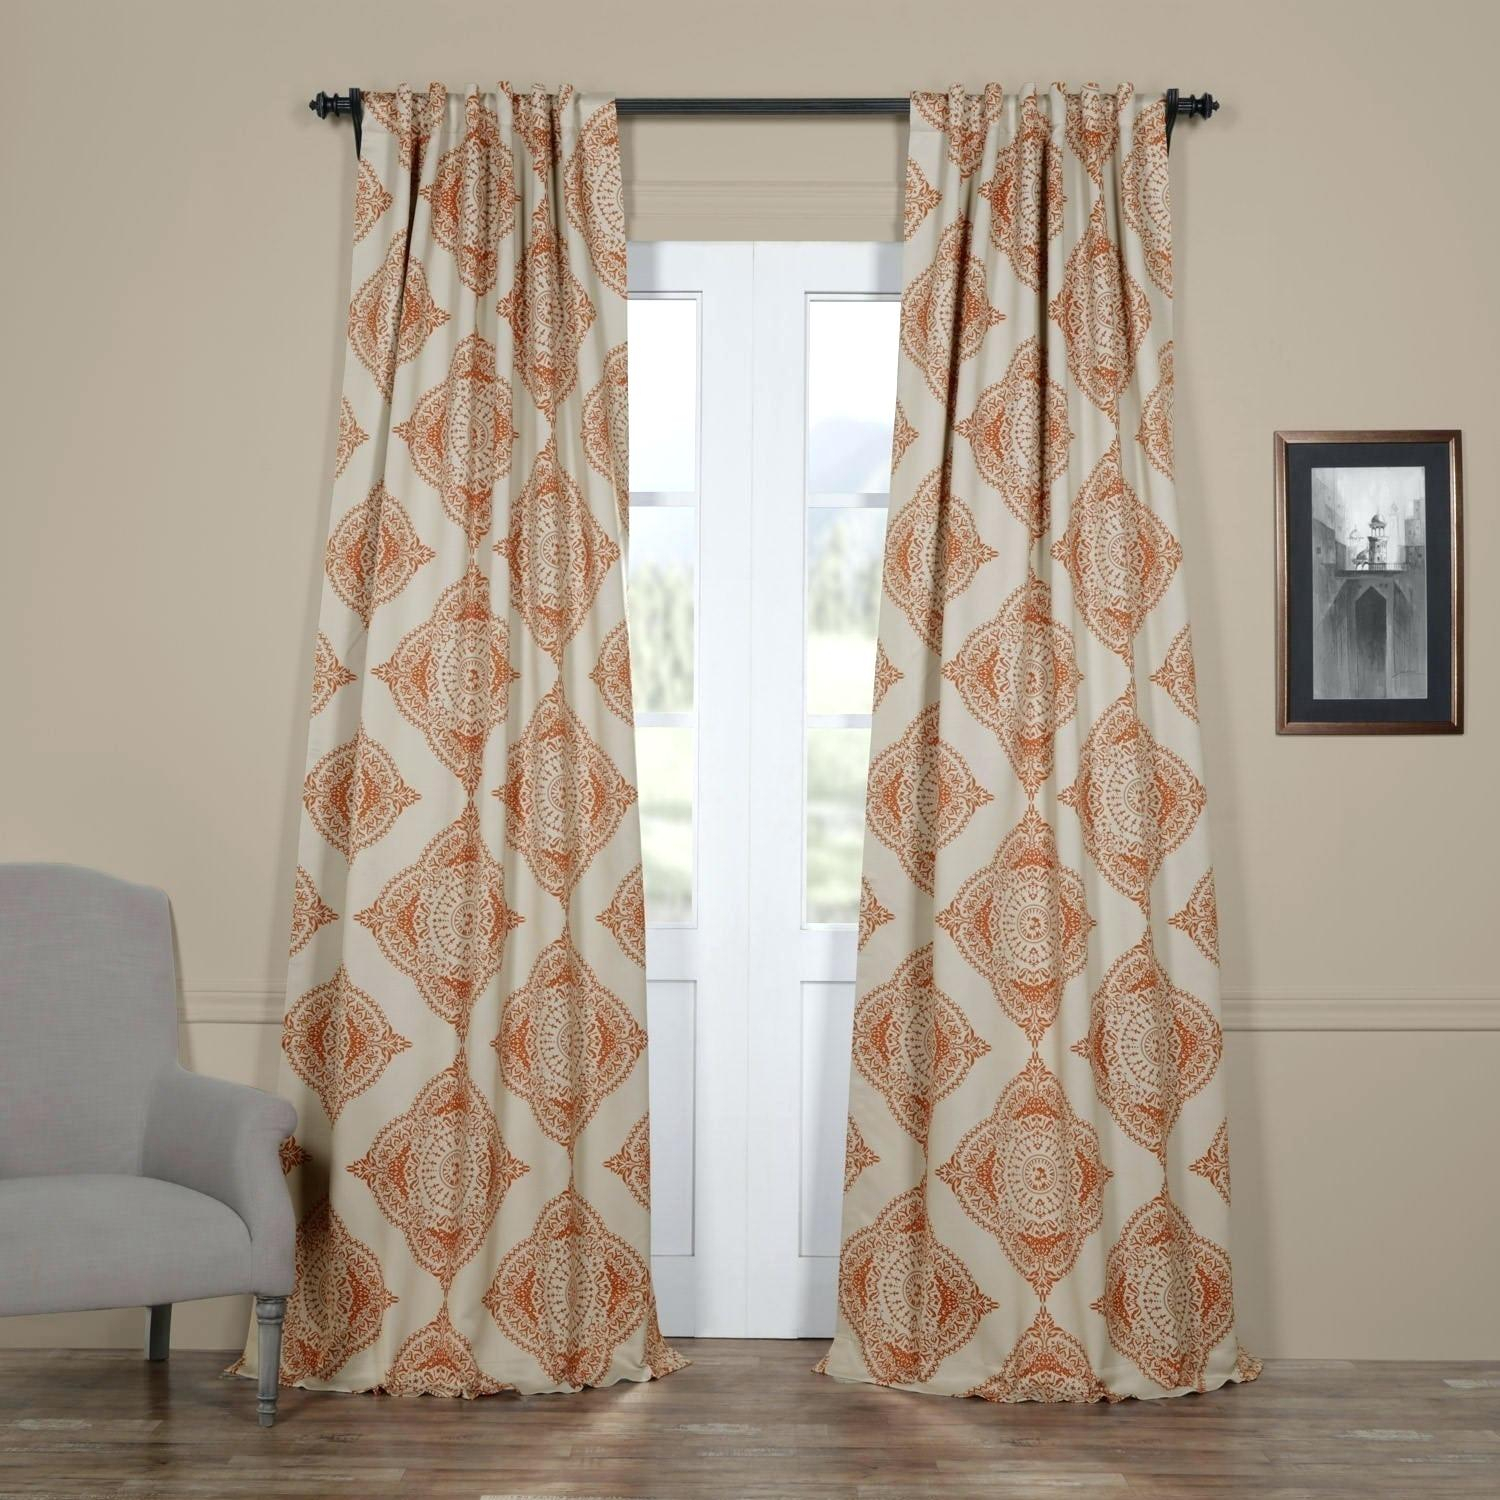 Overstock Blackout Curtains – Elevatedcreations (View 24 of 30)